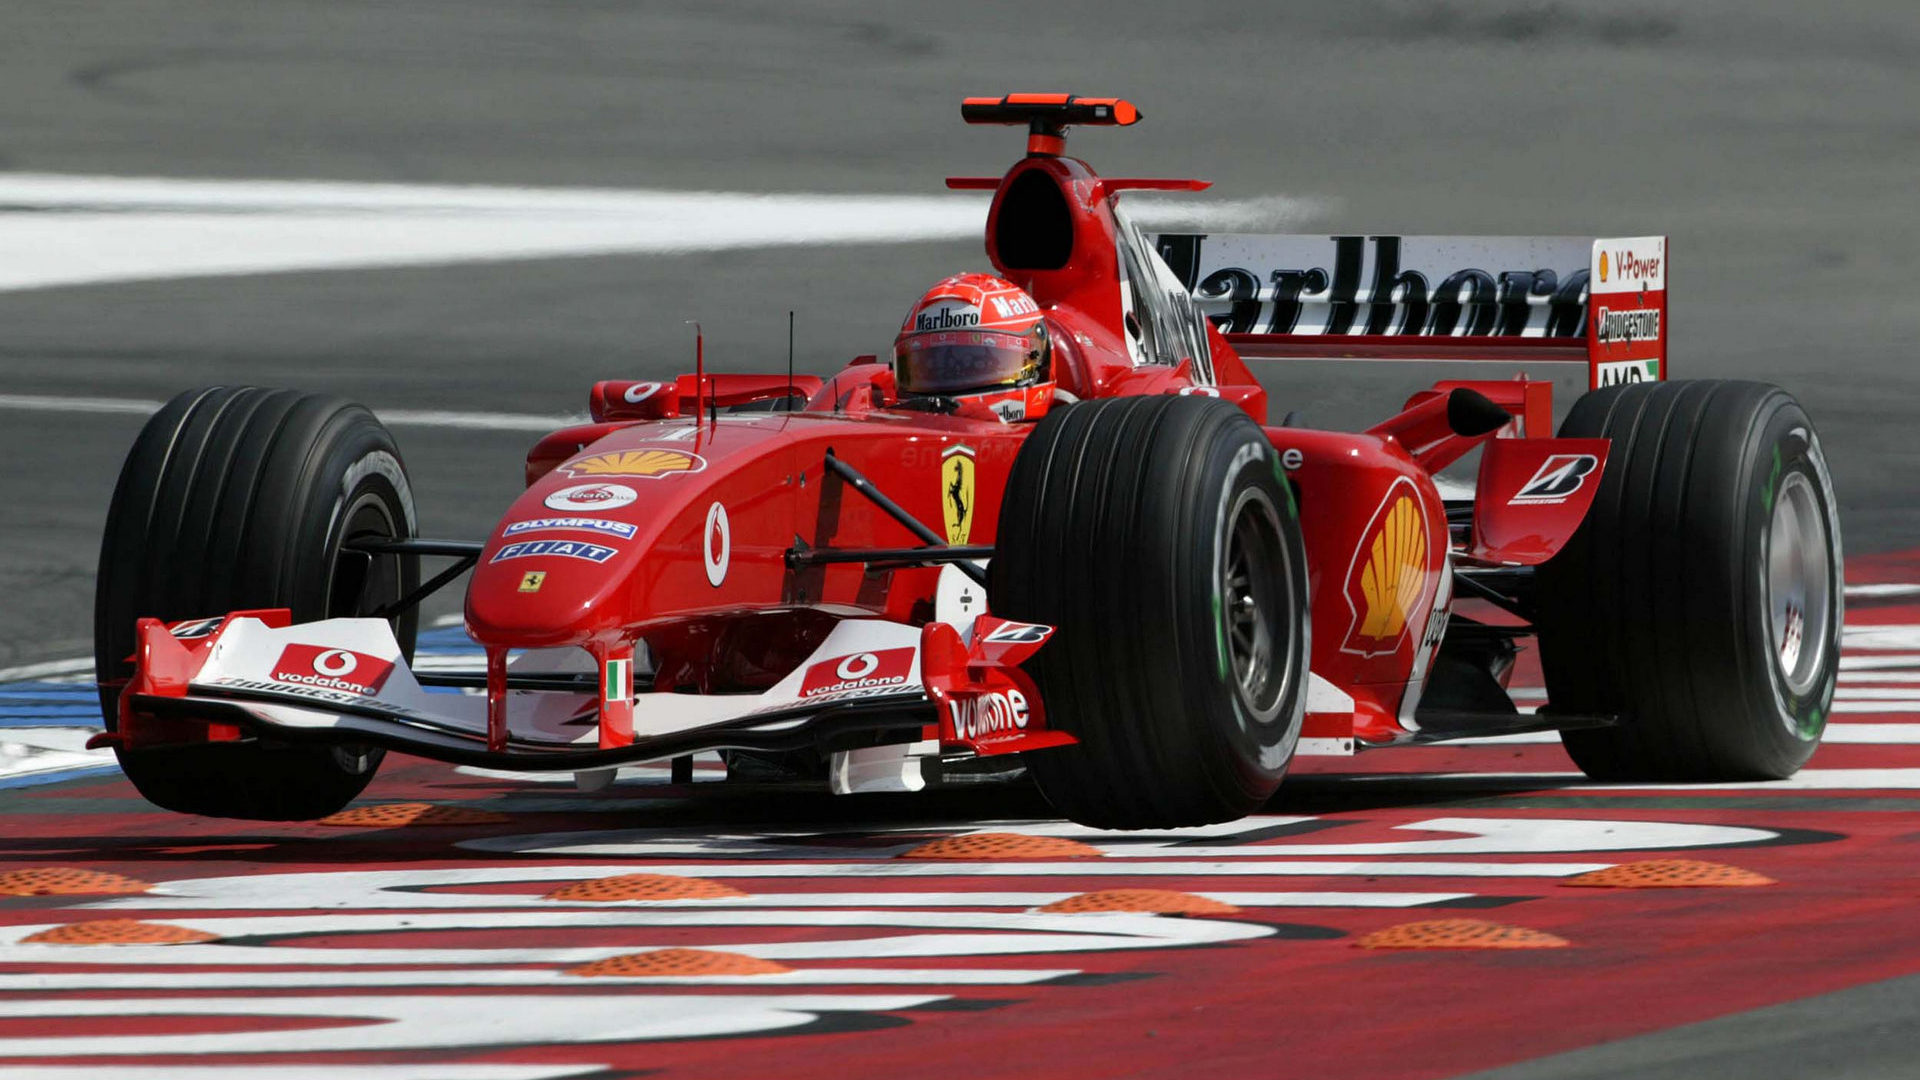 Welcome to F1 Boutique Canada! The largest race related